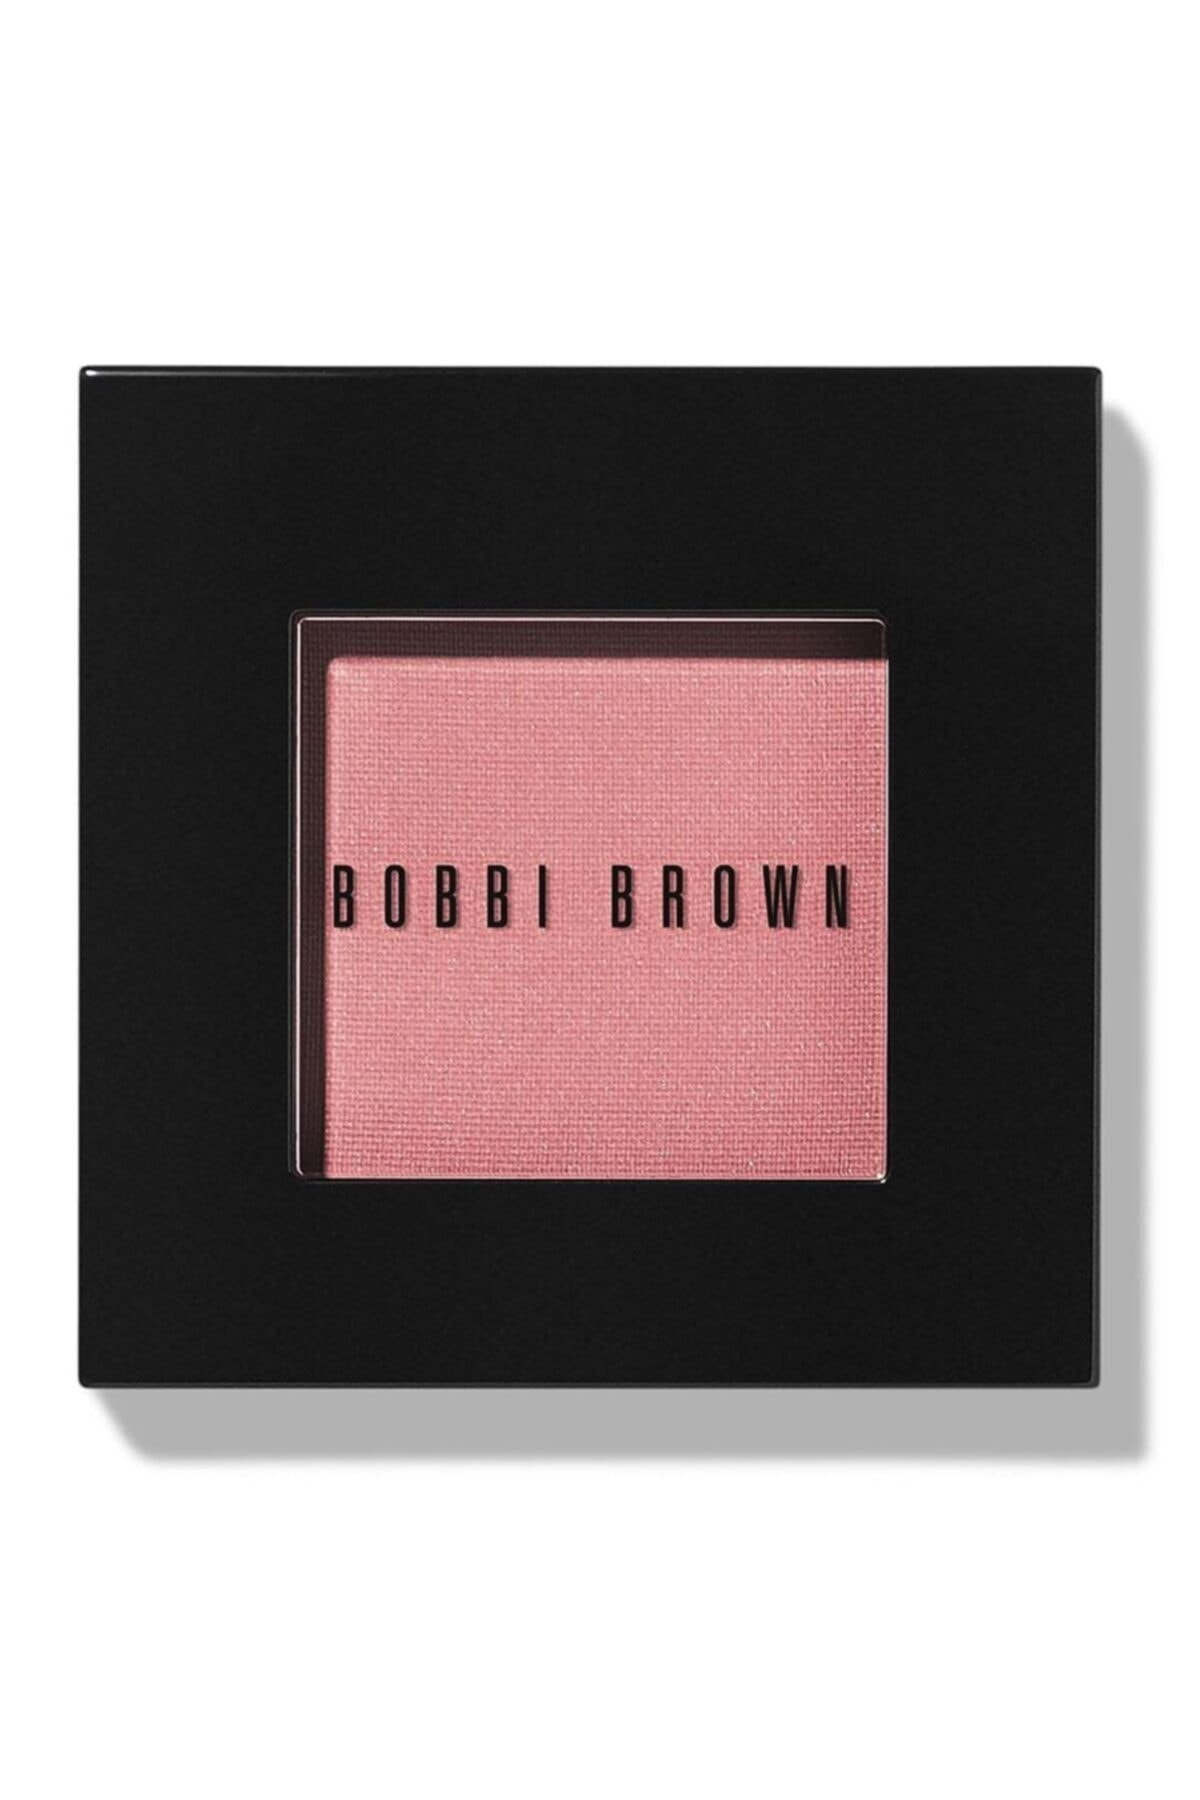 BOBBI BROWN Allık - Blush Nectar 3.7 g 716170059686 2